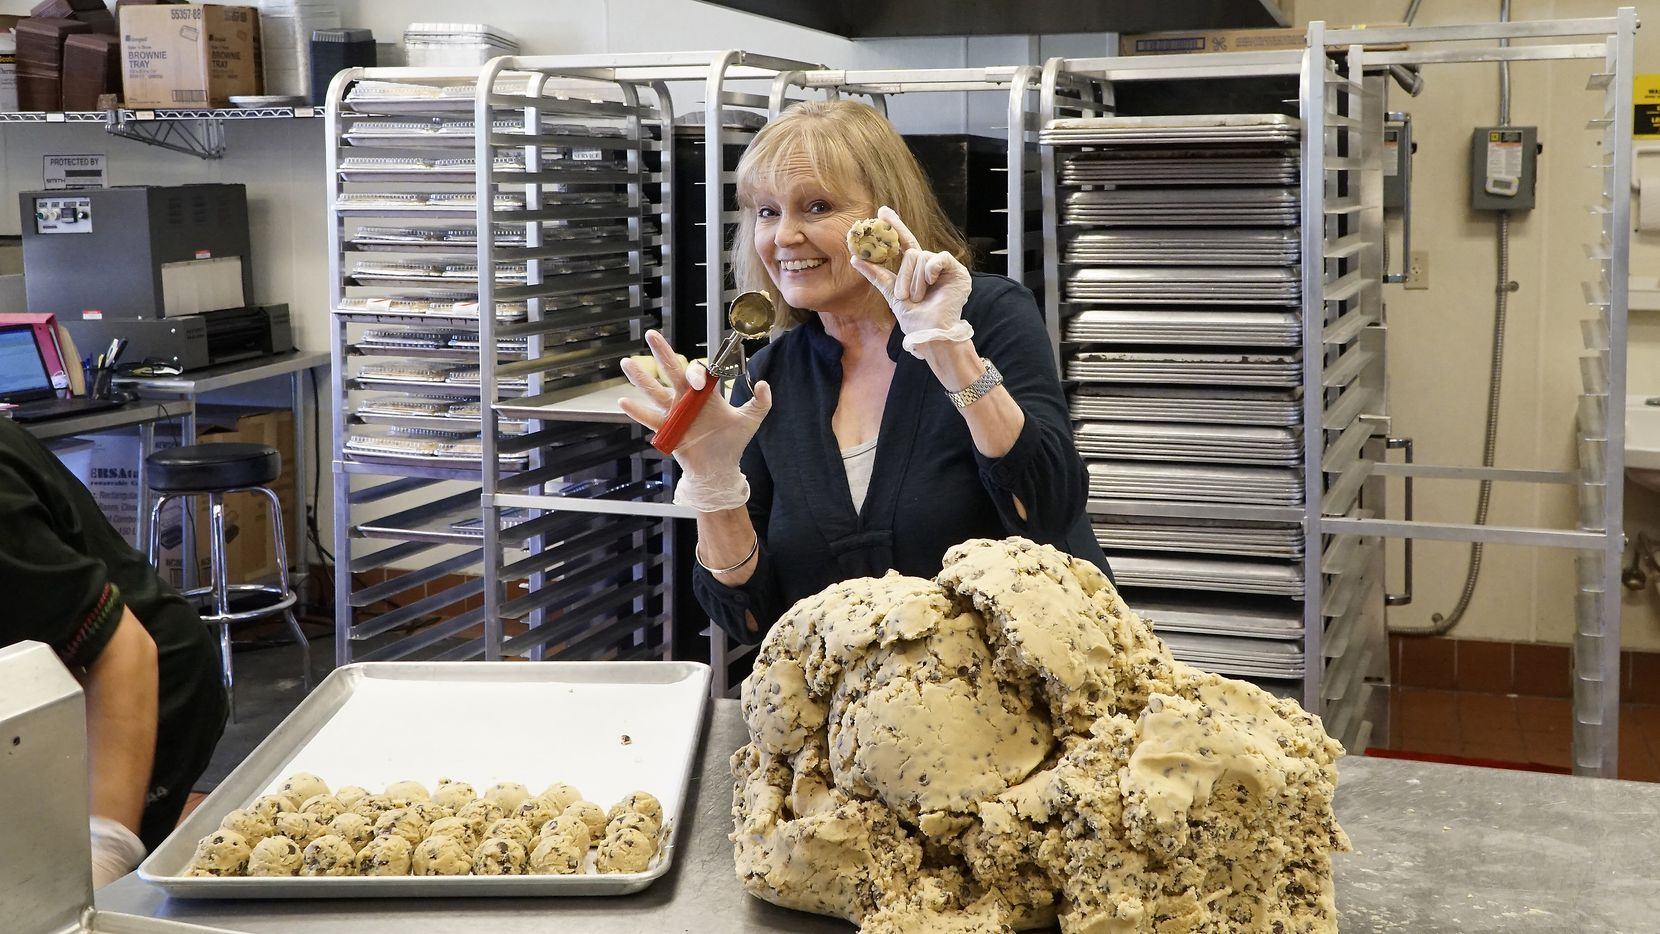 The Festive Kitchen owner Sandy Korem scoops the 8-millionth scoop of cookie dough at her store in Richardson, Texas on Monday, October 21, 2019.  (Lawrence Jenkins/Special Contributor)